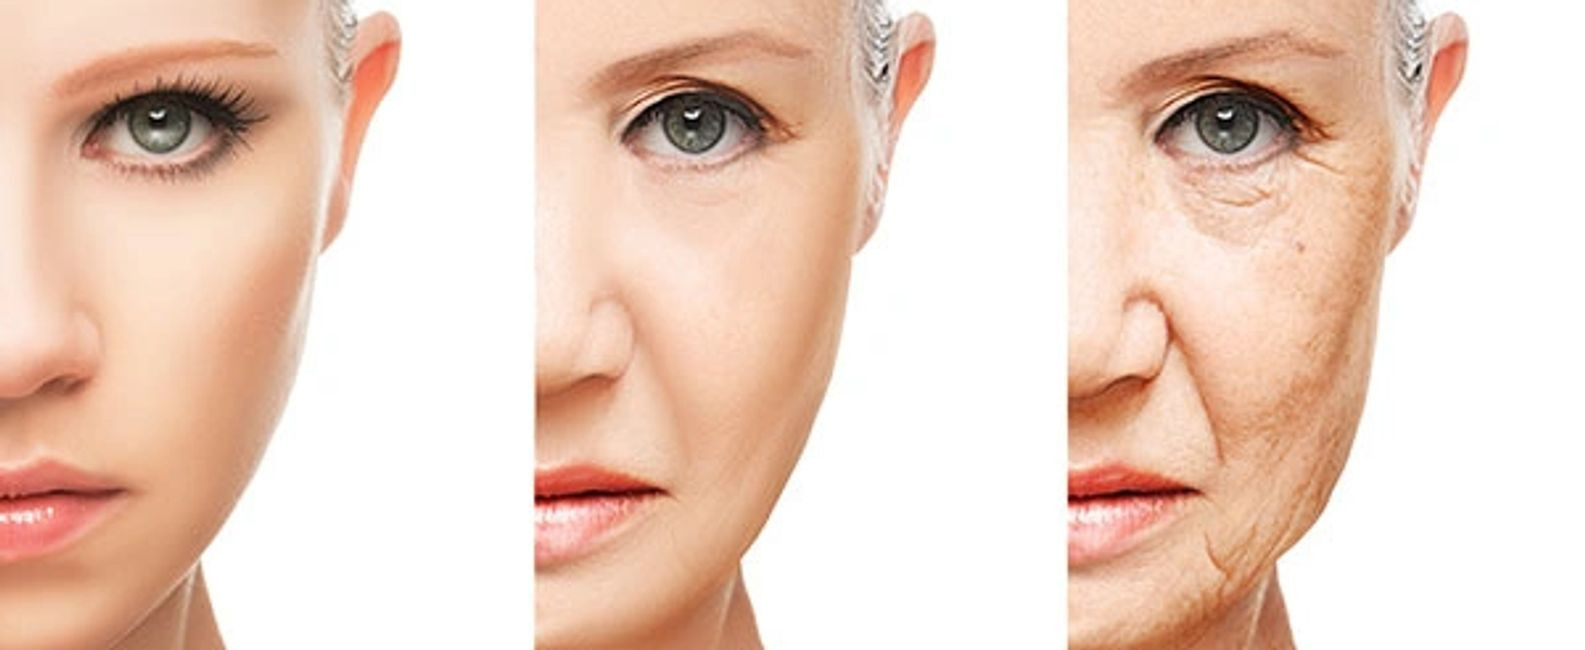 Microneedling is a treatment whereby small needles are pushed over your face to build collagen.